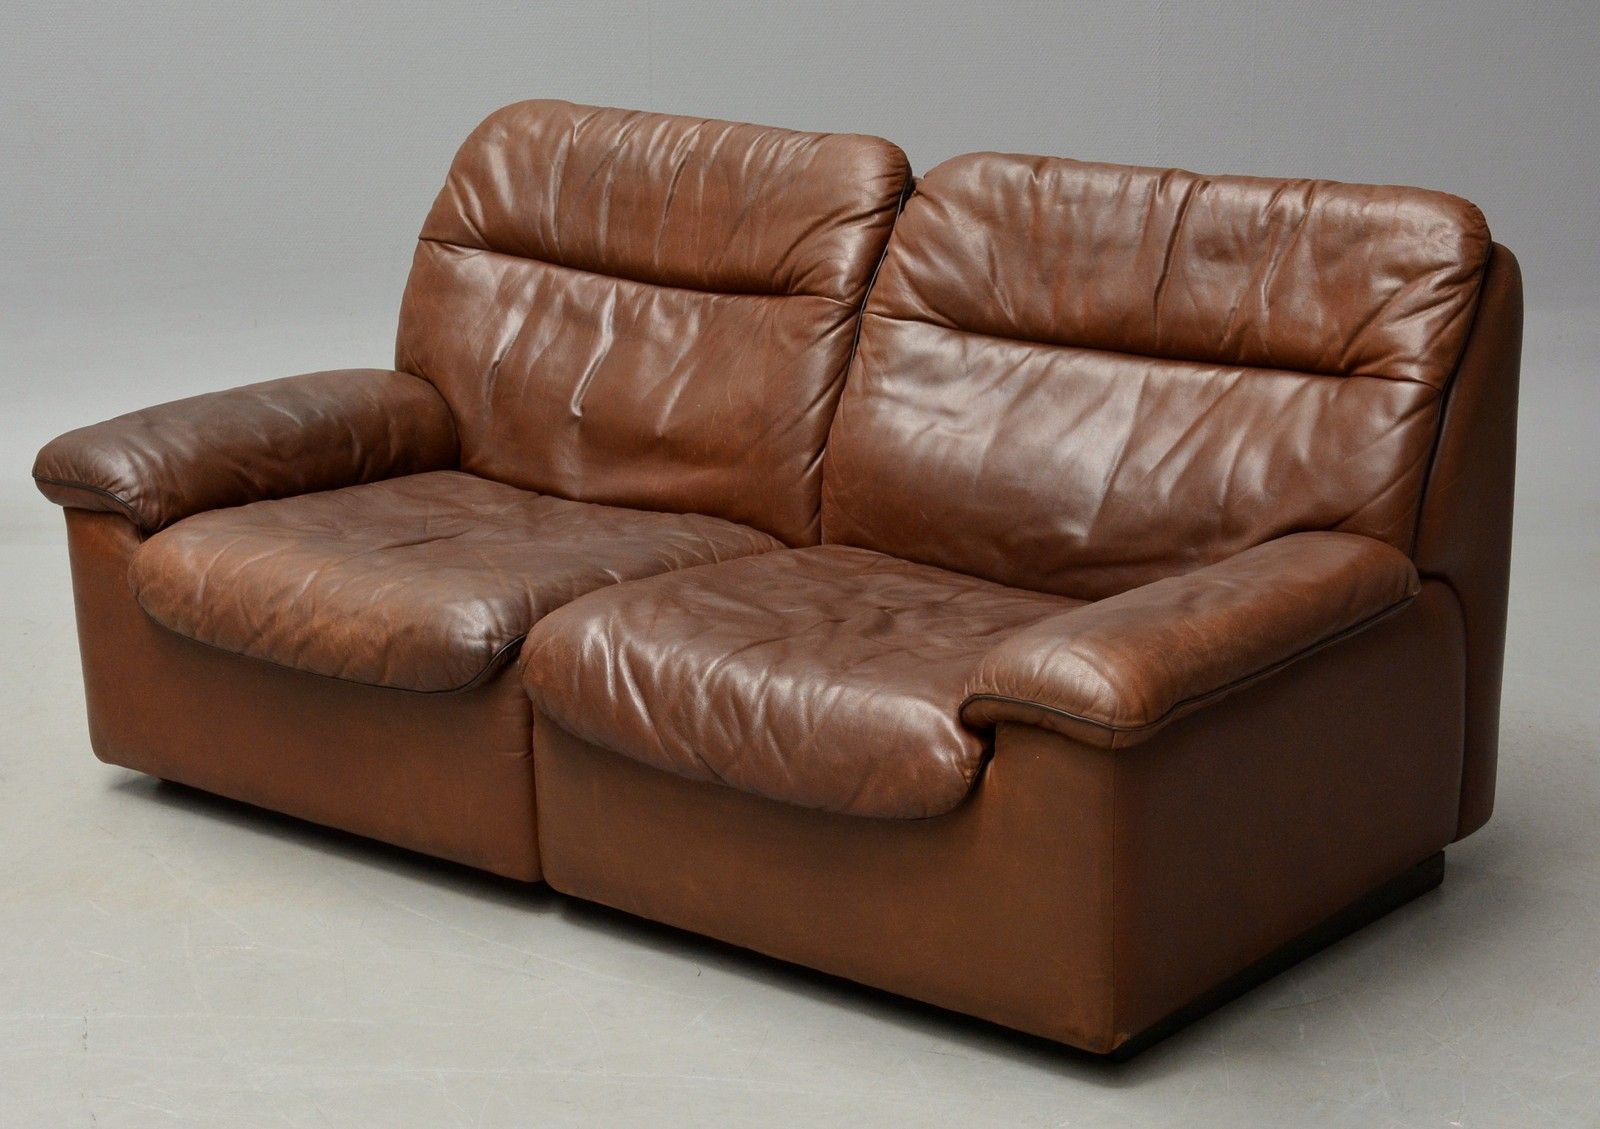 Vintage 2 seater leather sofa from de sede for sale at pamono for 2 seater leather sofa